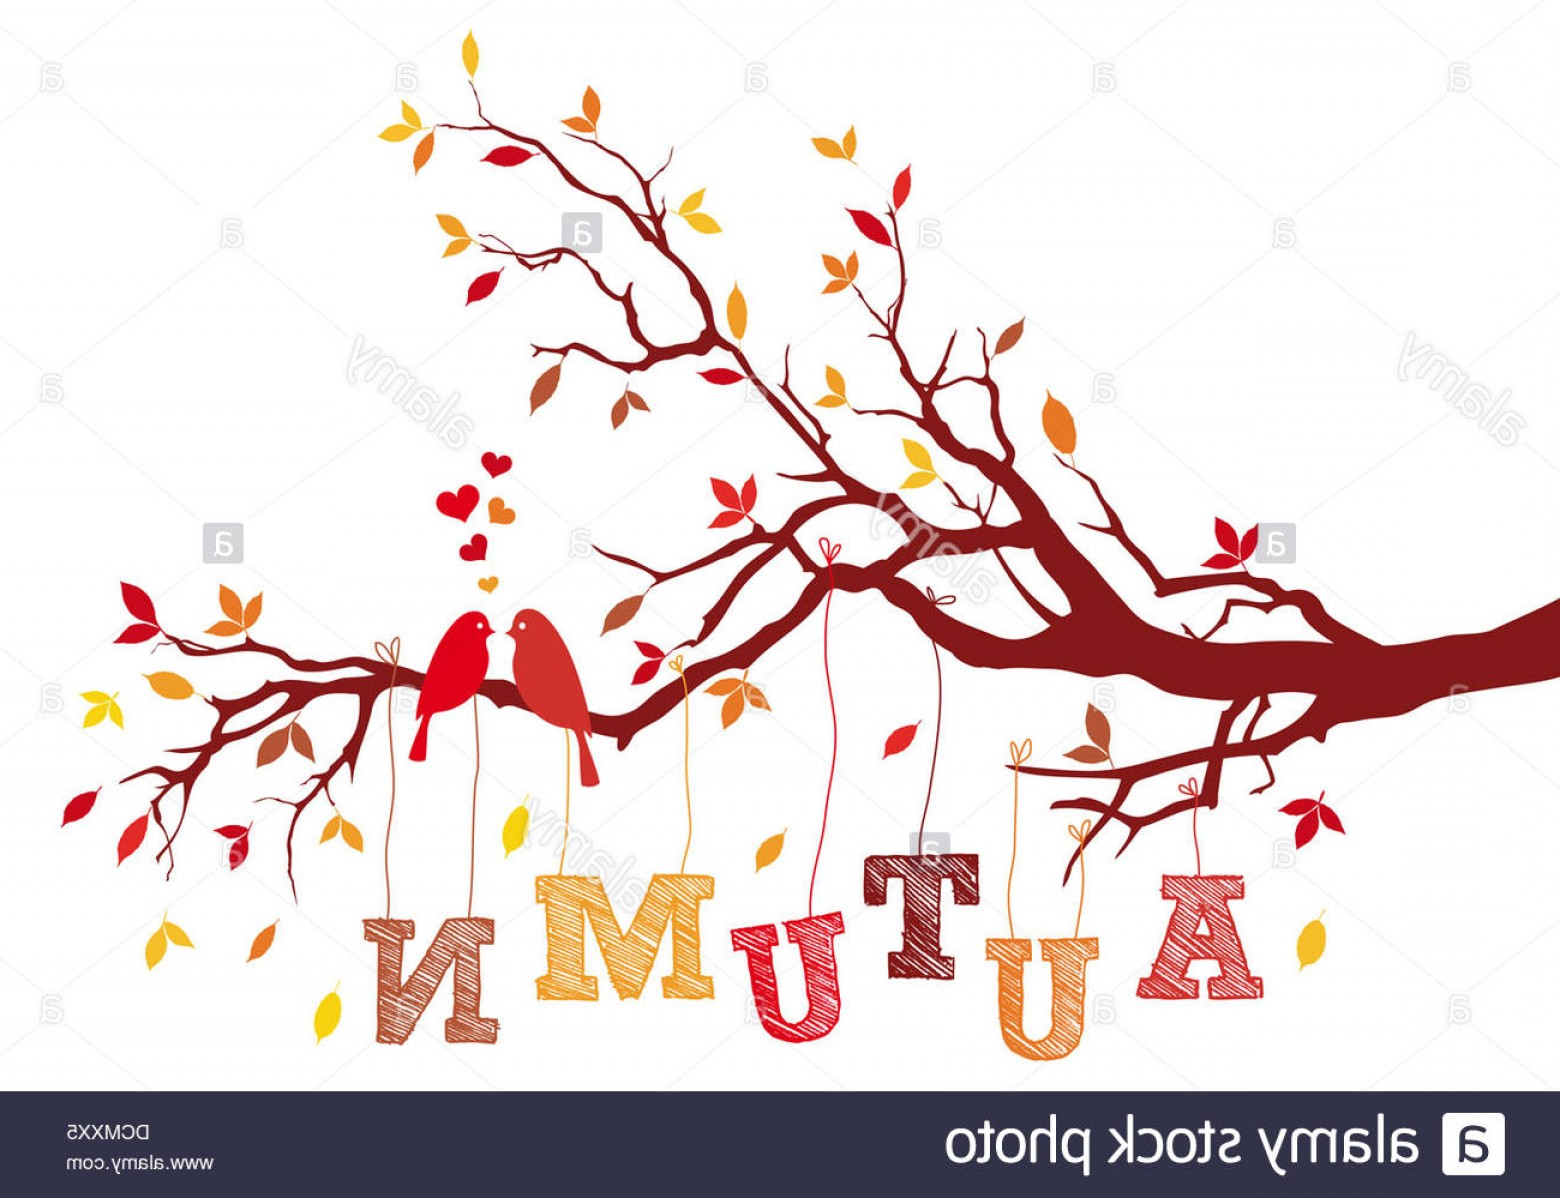 Tree Branch Vector Background: Stock Photo Birds On Autumn Tree Branch With Falling Leaves Vector Background